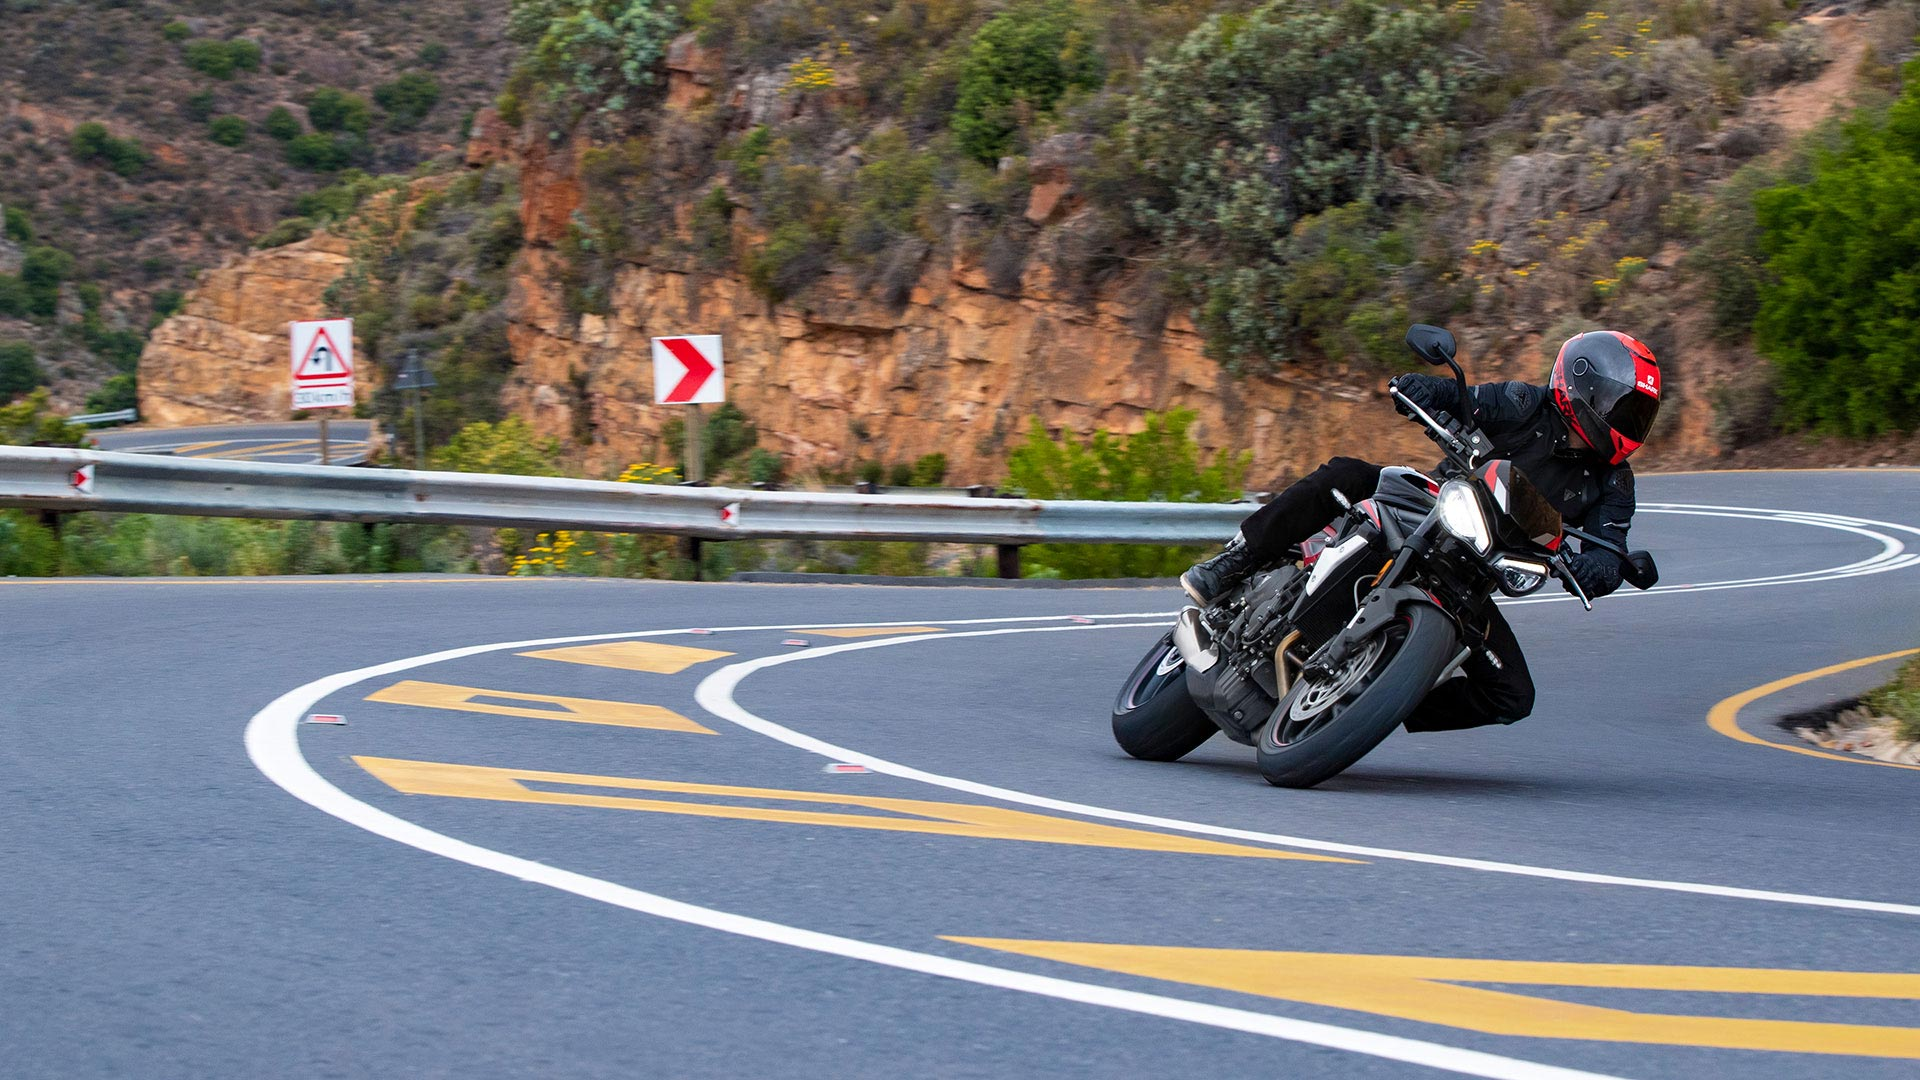 Triumph Street Triple R taking on winding roads